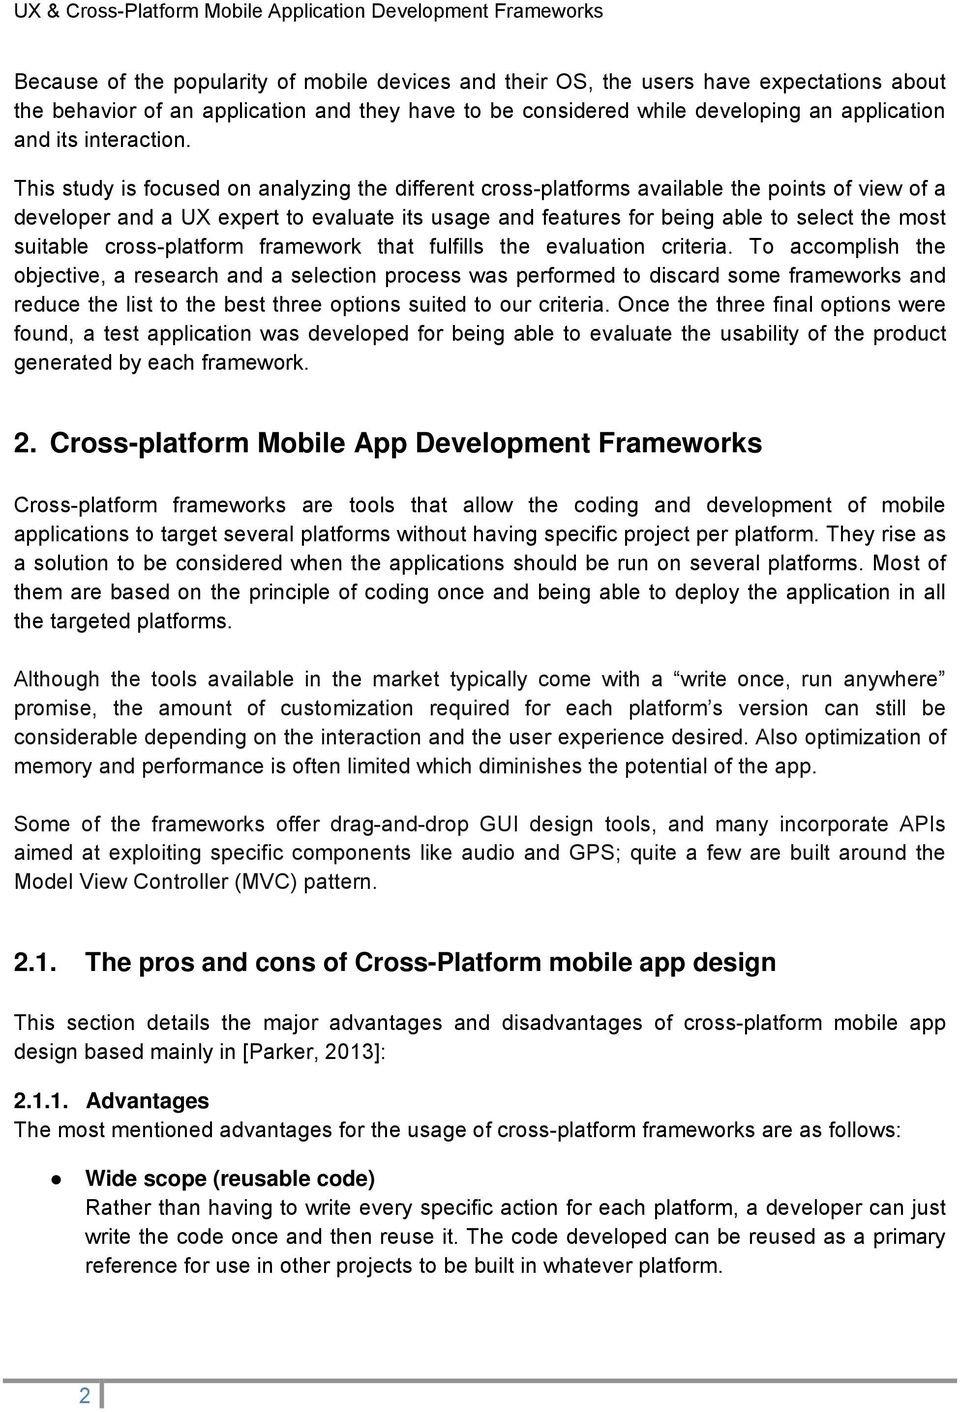 This study is focused on analyzing the different cross-platforms available the points of view of a developer and a UX expert to evaluate its usage and features for being able to select the most